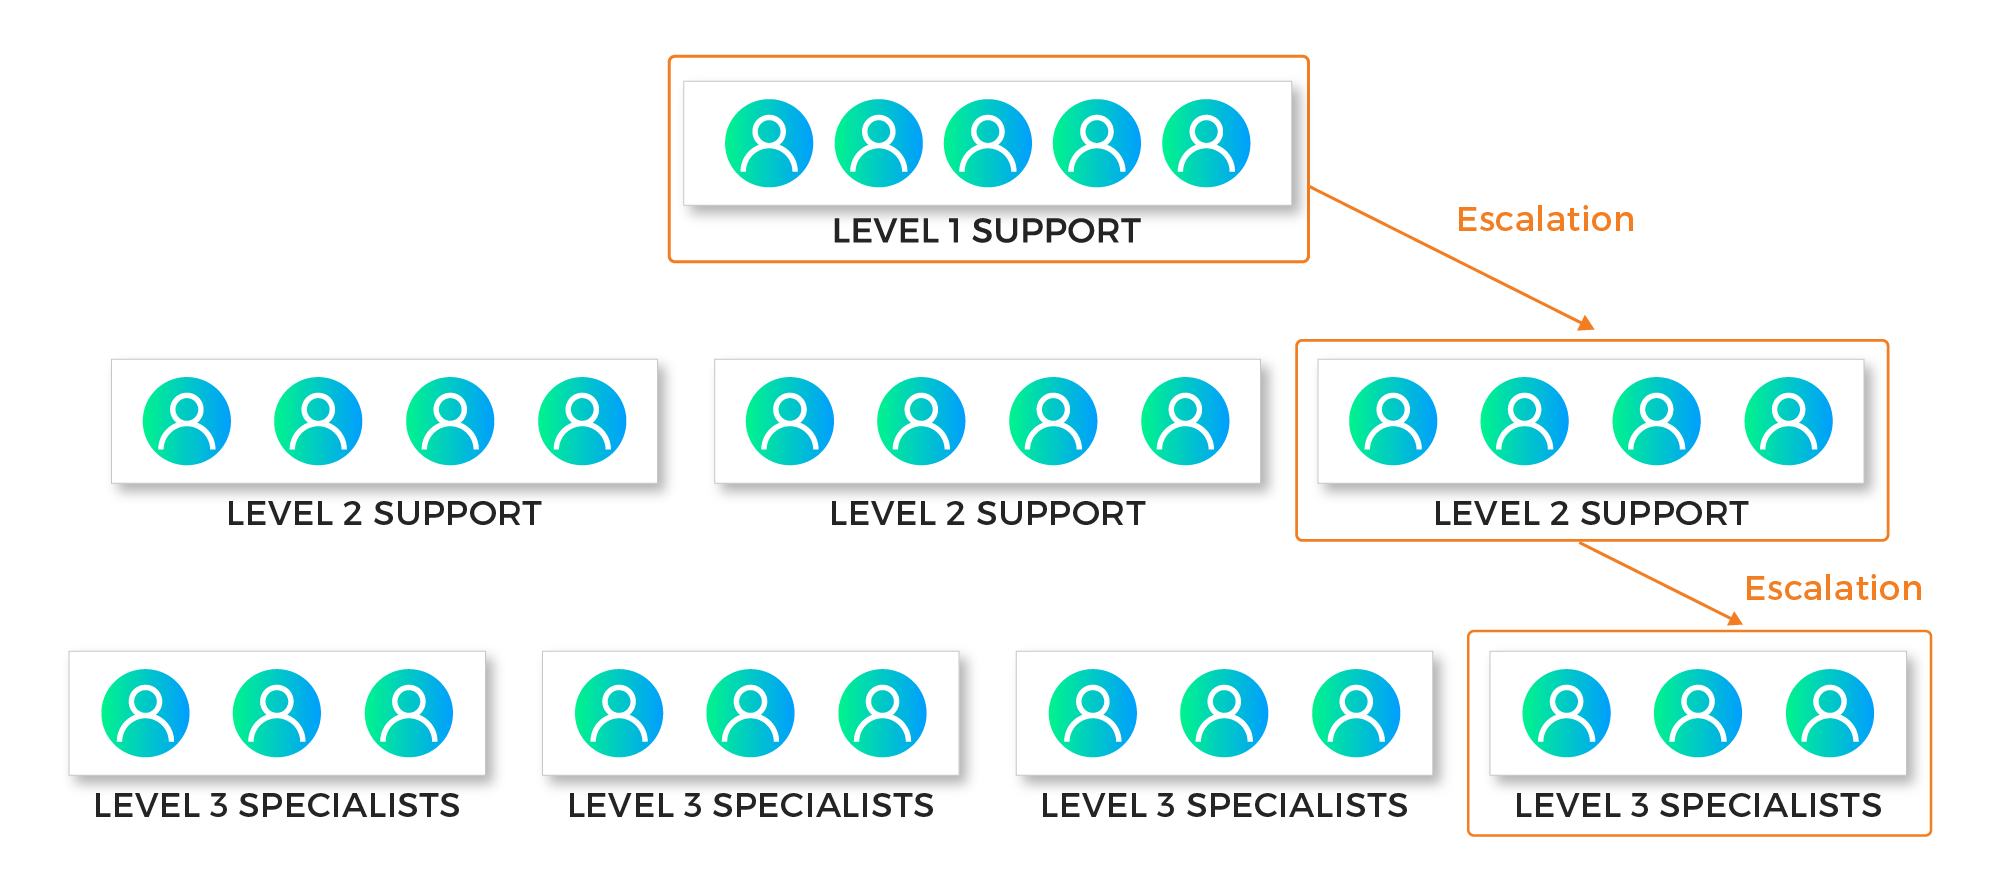 a linear escalation hierarchy where the troubled tickets of varying difficulty get escalated